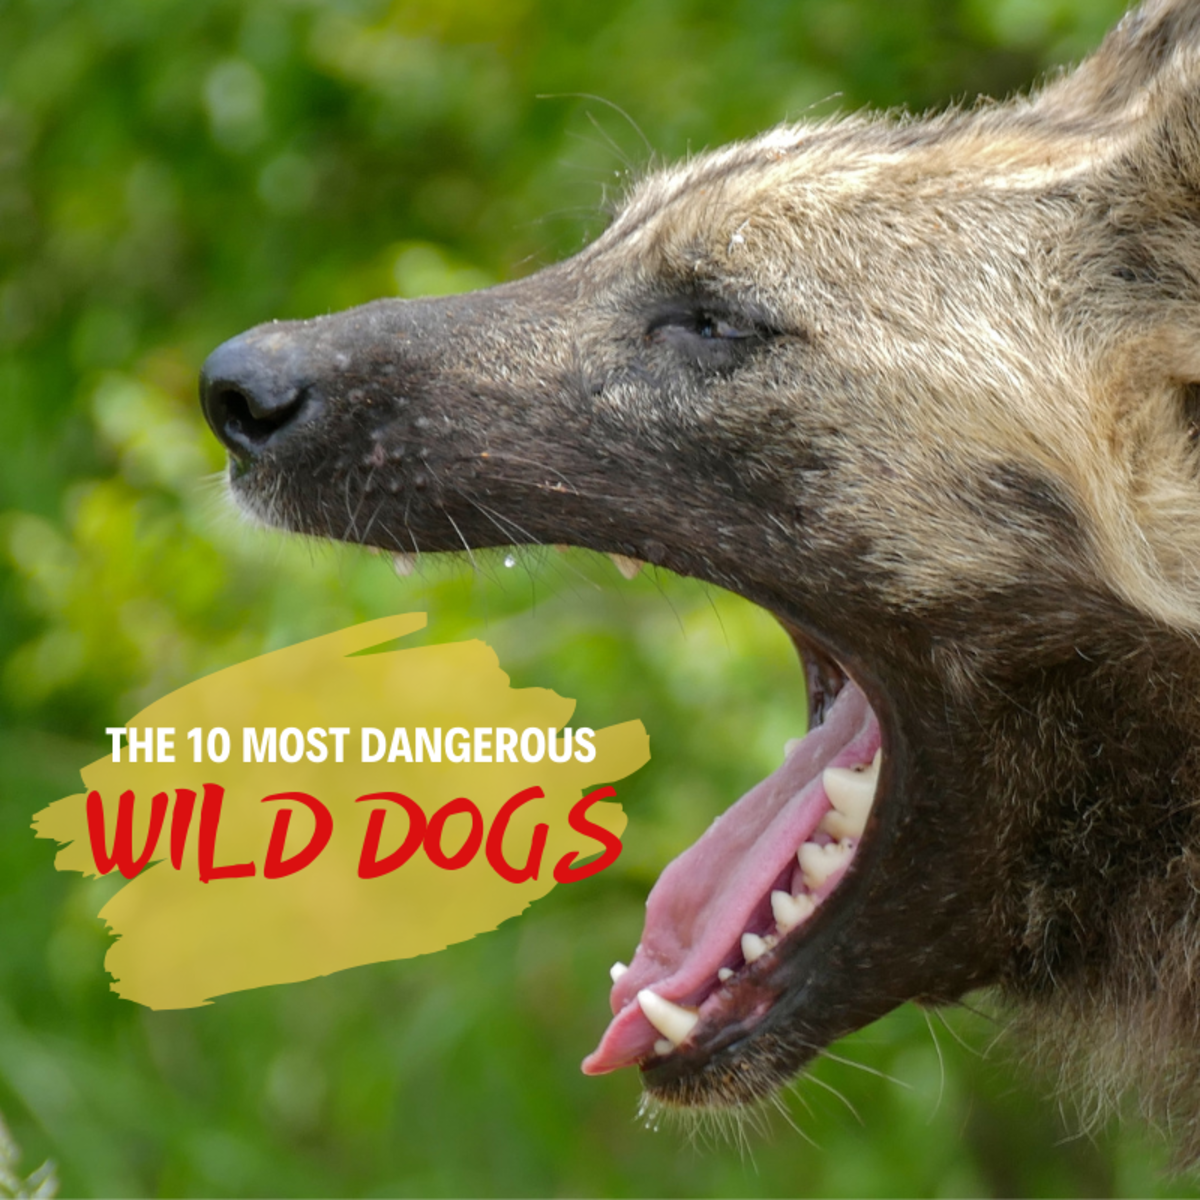 Dogs have been domesticated for thousands of years, but certain breeds still roam the wilds in packs like their lupine ancestors.